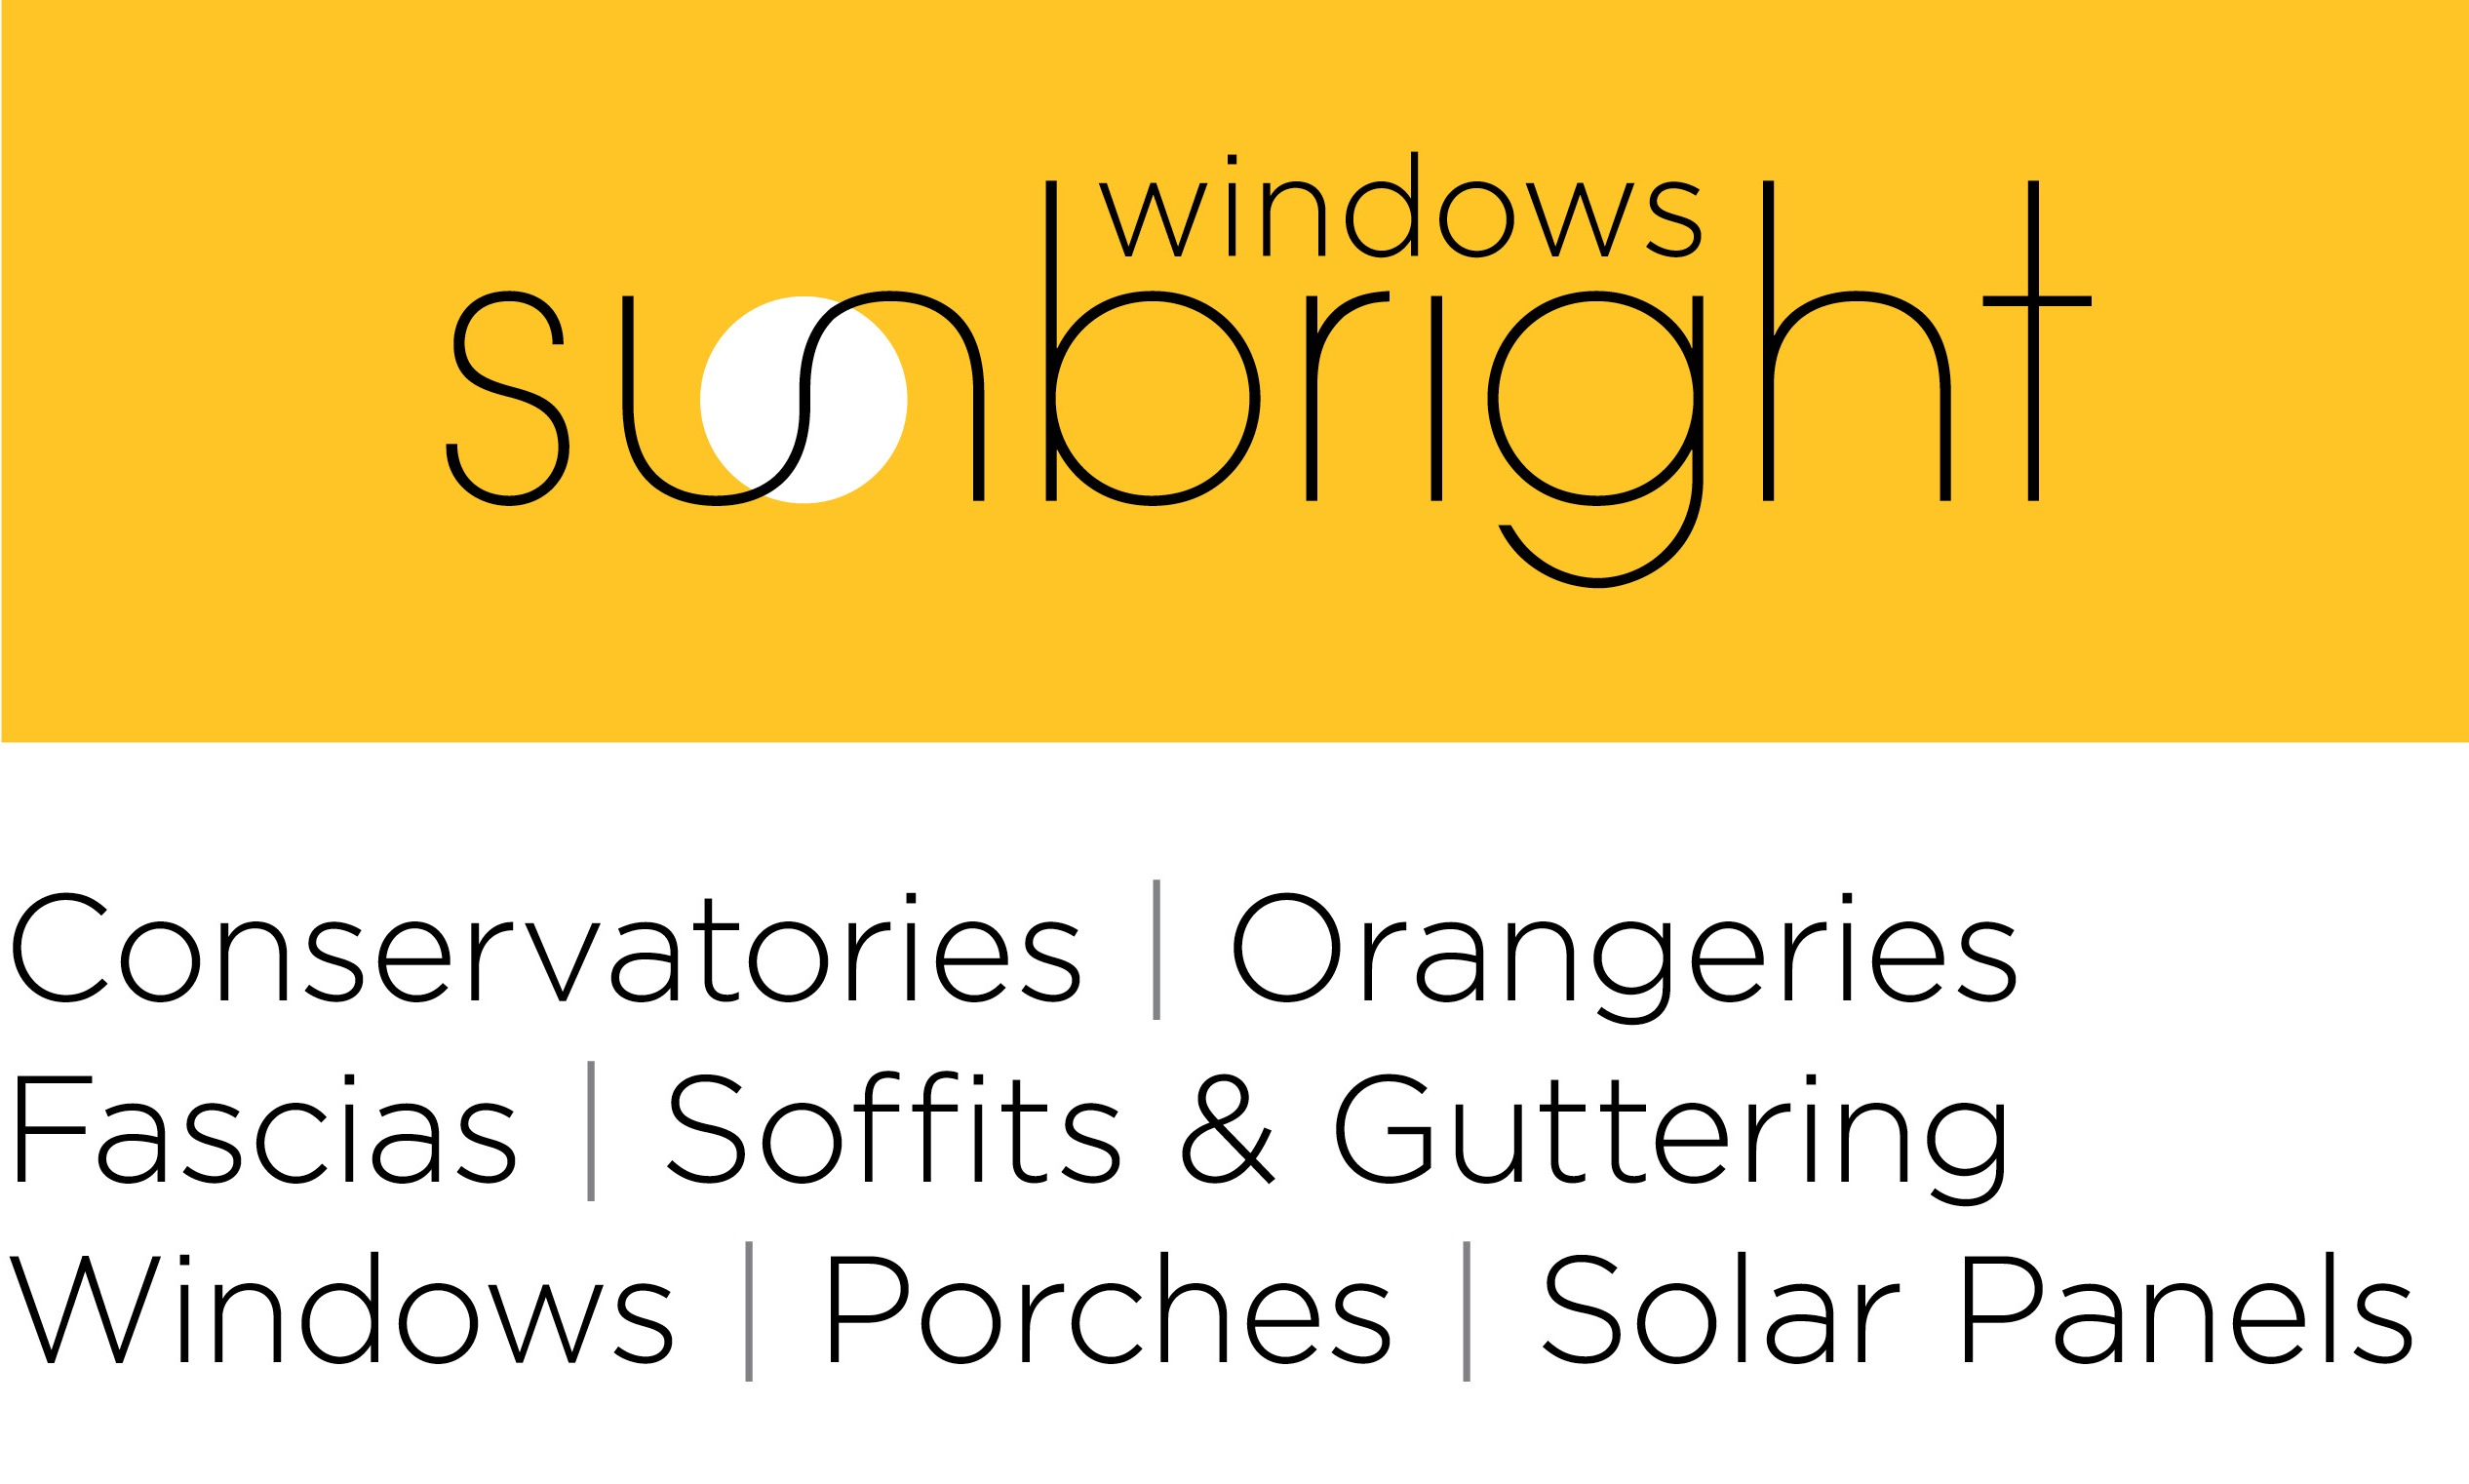 Sunbright  Windows www.sunbrightwindows.co.uk